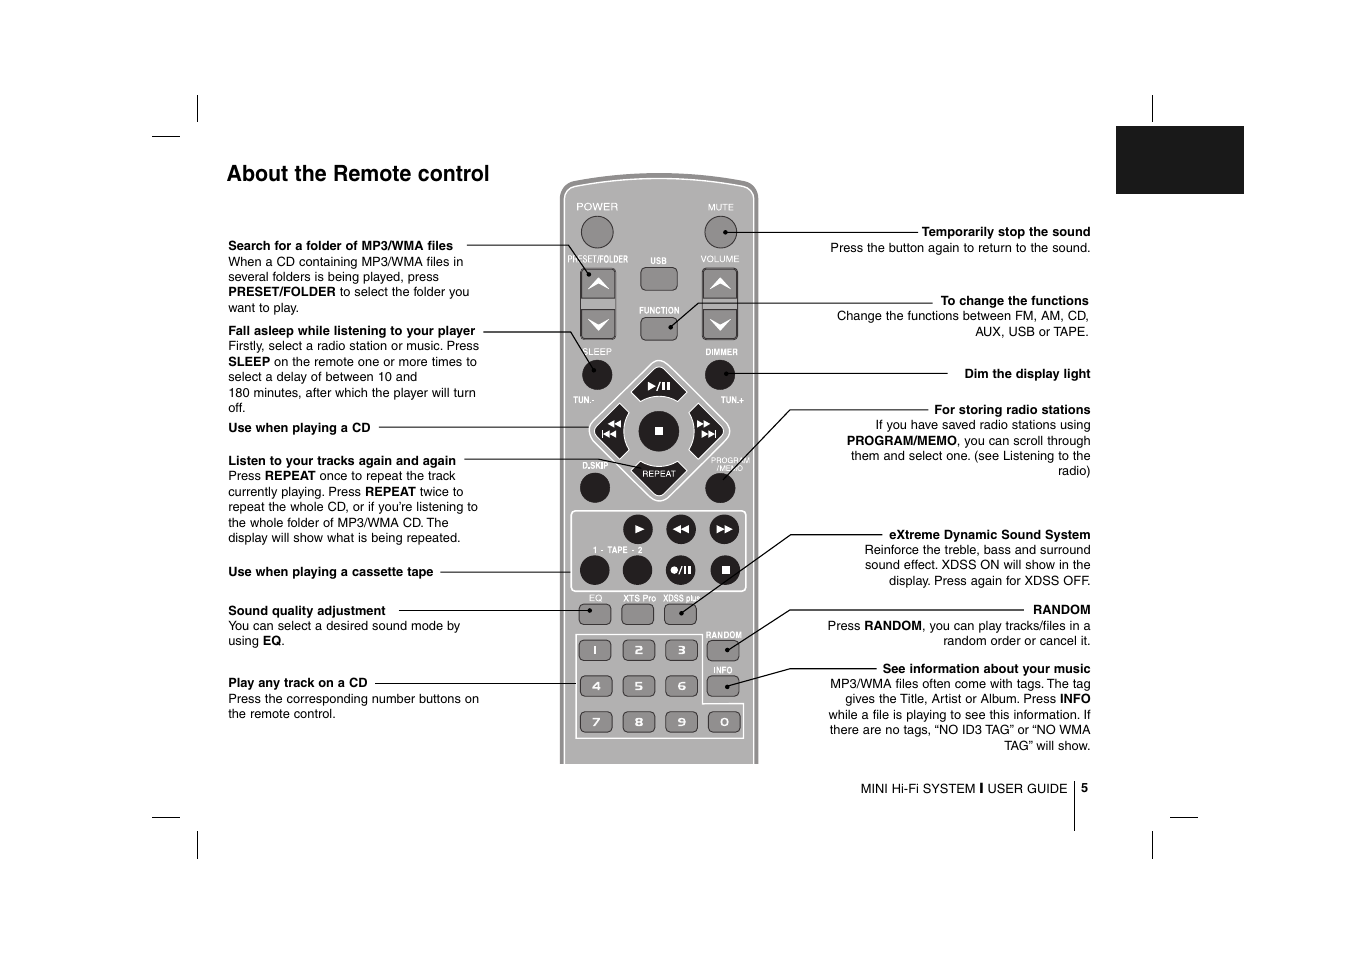 about the remote control lg mcd112 user manual page 5 12 rh manualsdir com Best MP3 Players Sears MP3 Player